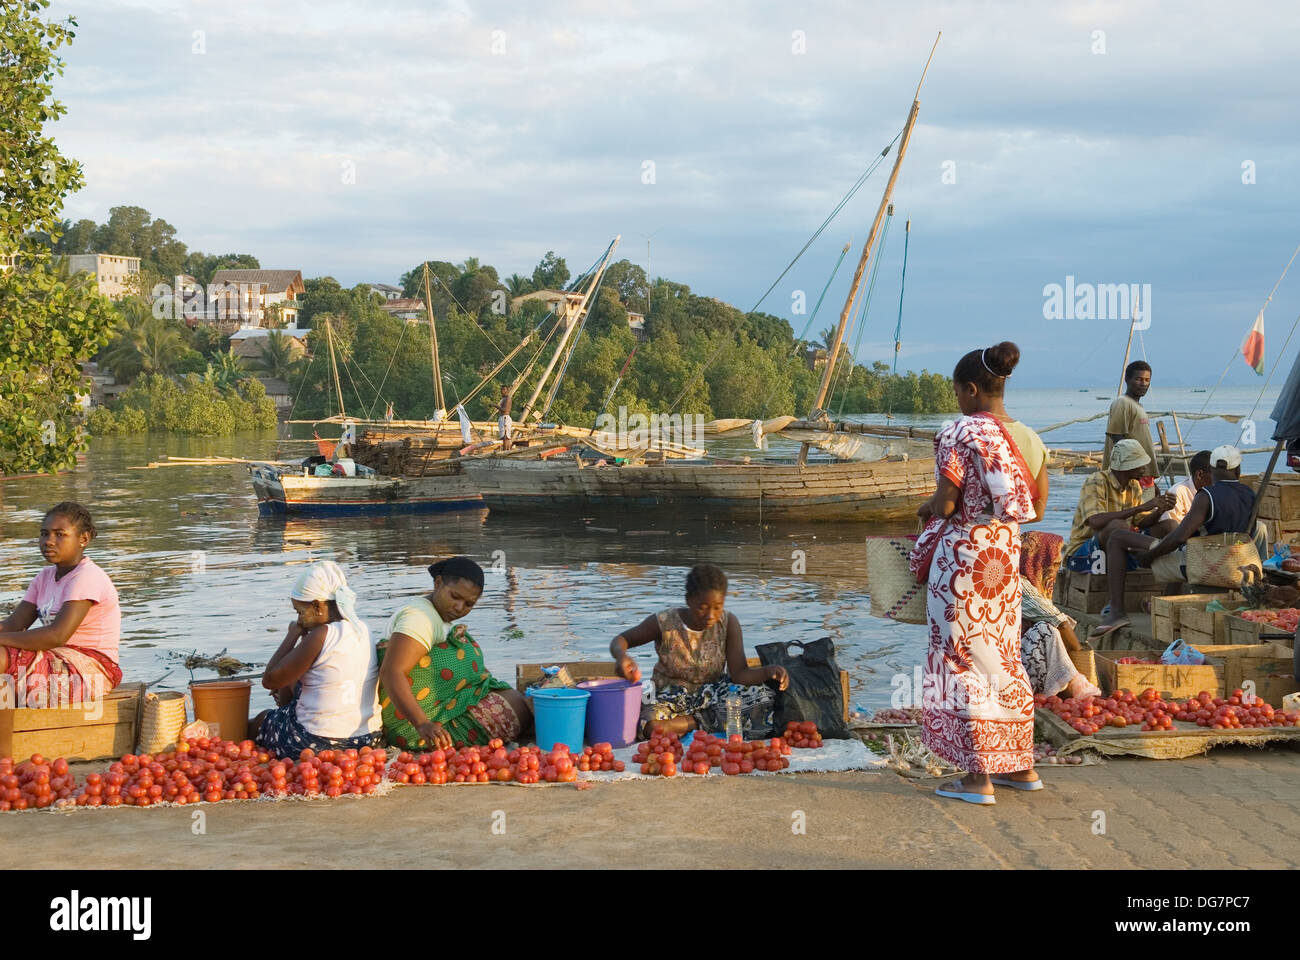 big market on the harbour, Hell-Ville Andoany, Nosy Be island, Republic of Madagascar, Indian Ocean - Stock Image